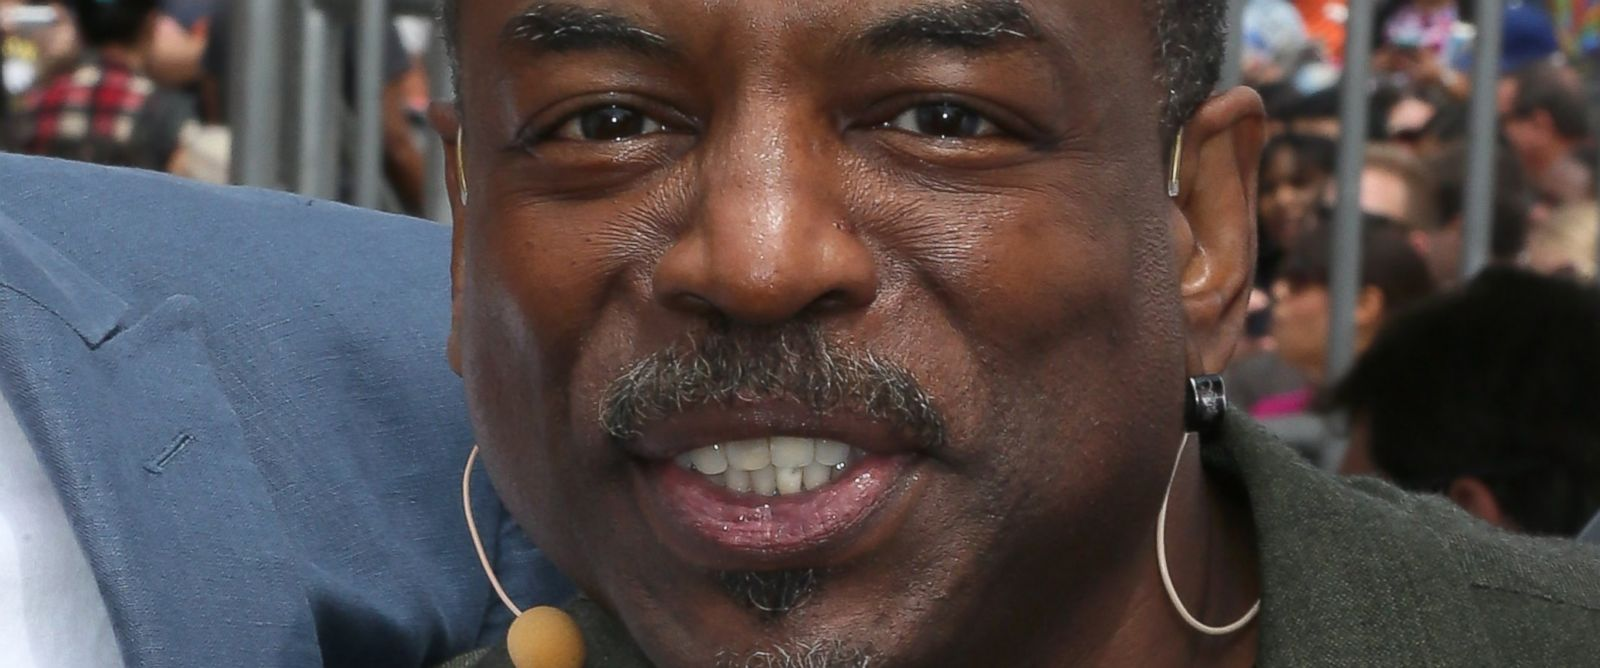 PHOTO: Actor LeVar Burton attends the 19th Annual Los Angeles Times Festival of Books on April 12, 2014 in Los Angeles, California.